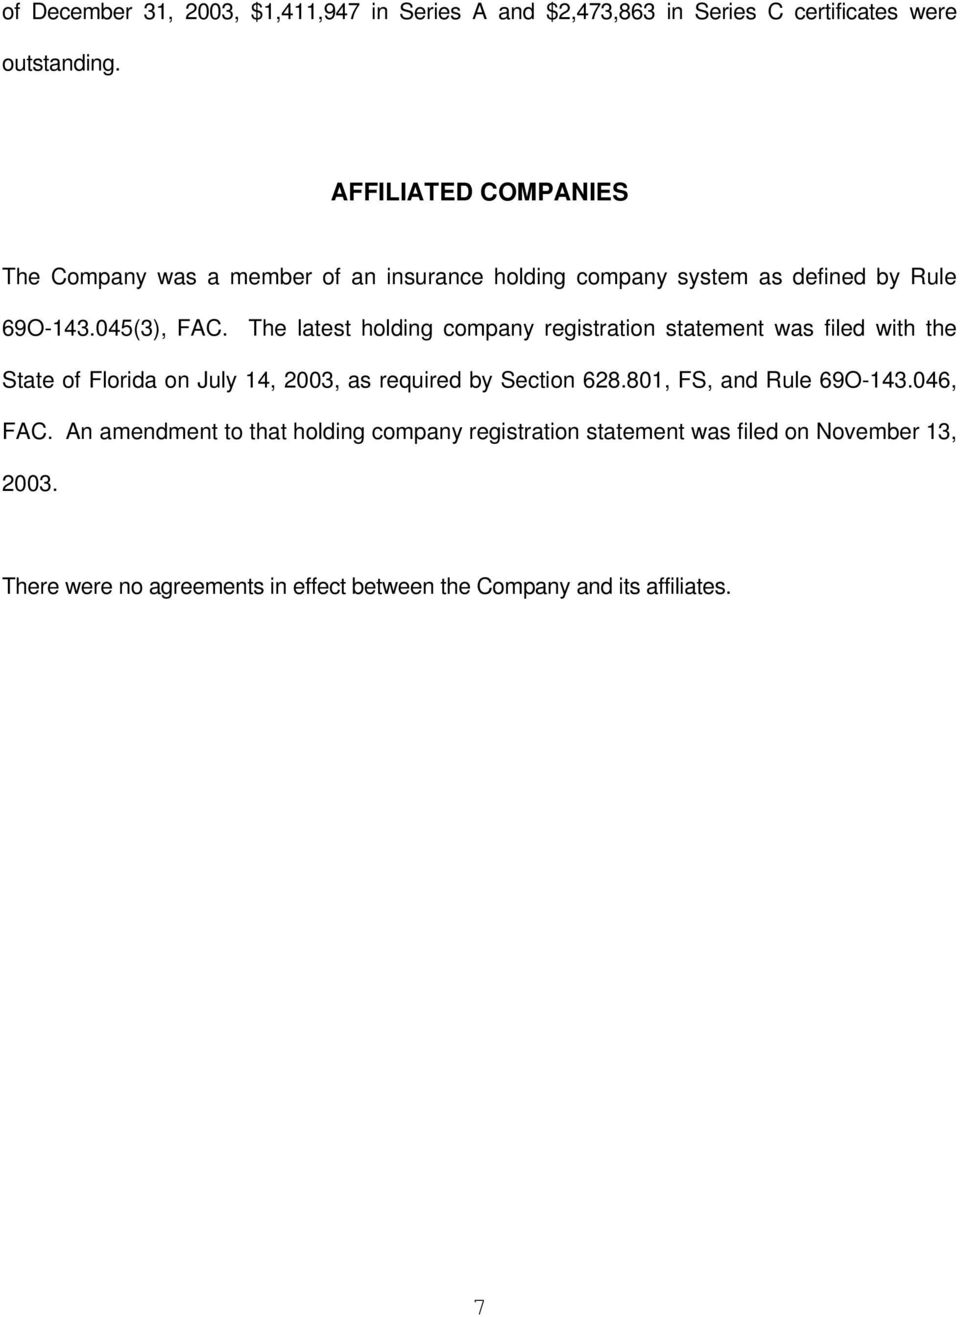 The latest holding company registration statement was filed with the State of Florida on July 14, 2003, as required by Section 628.